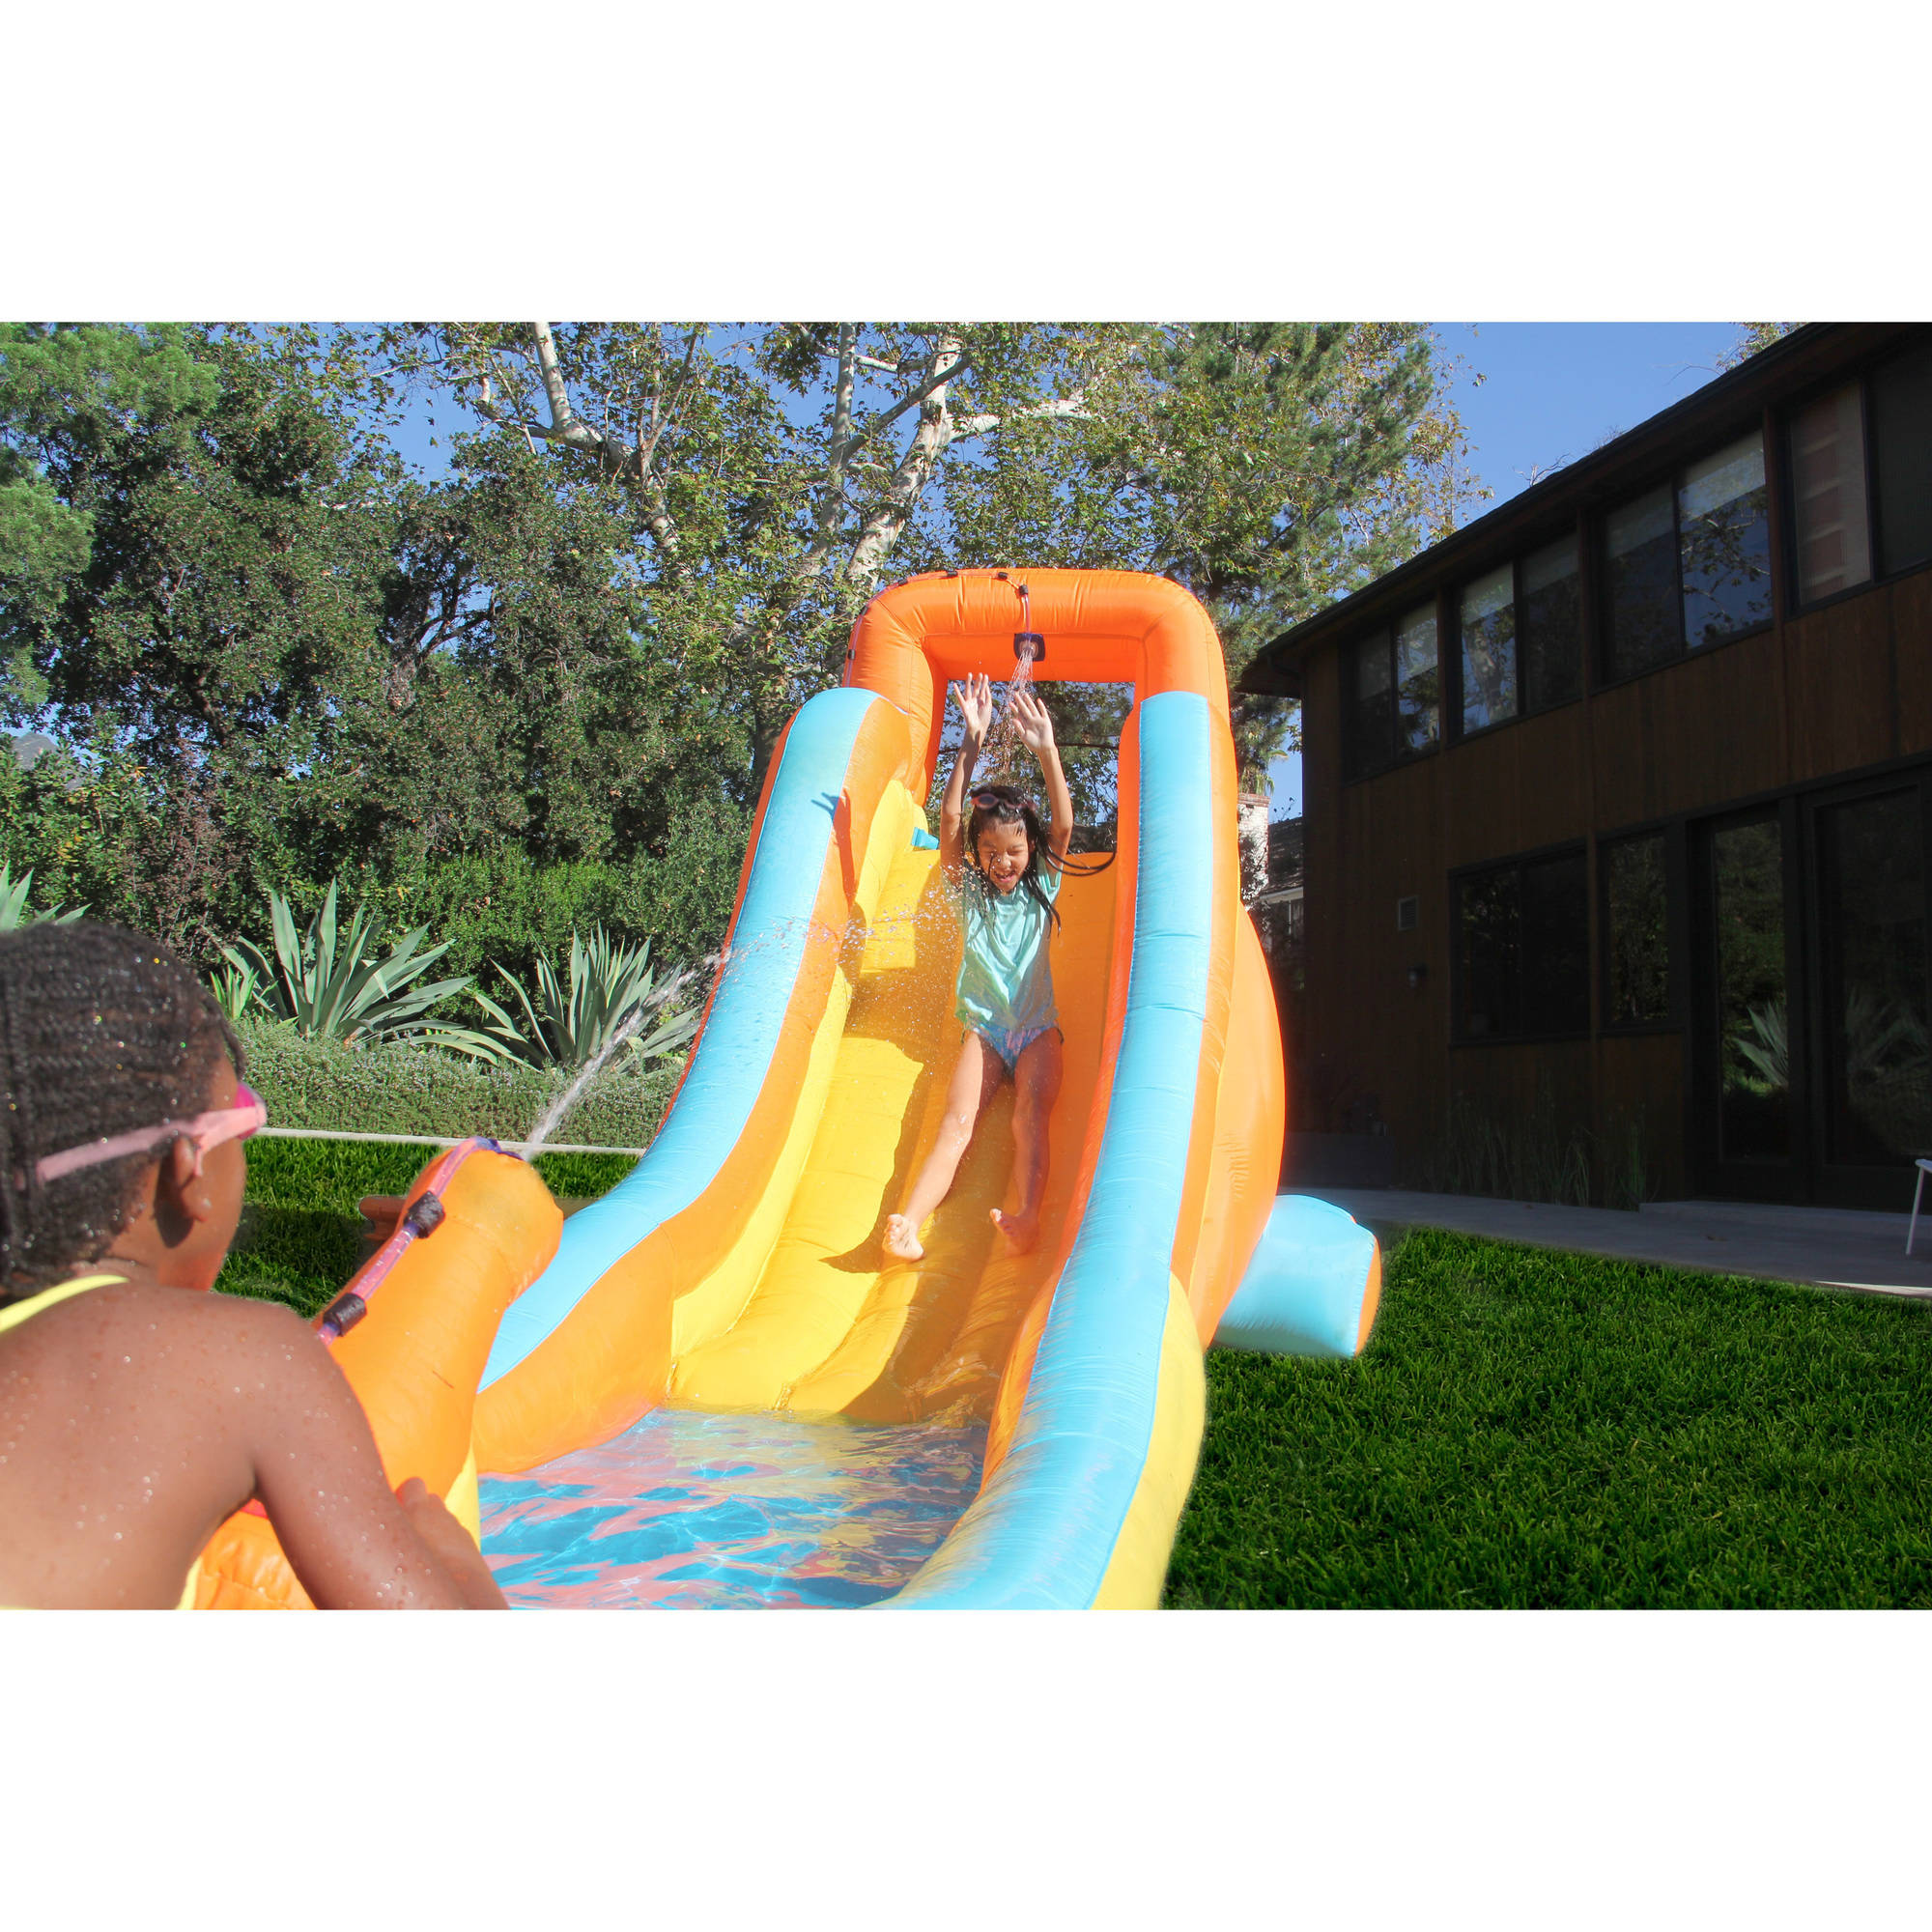 Inflatable Water Slide Kids Outdoor Backyard Splash Swimming Pool Fun Play New